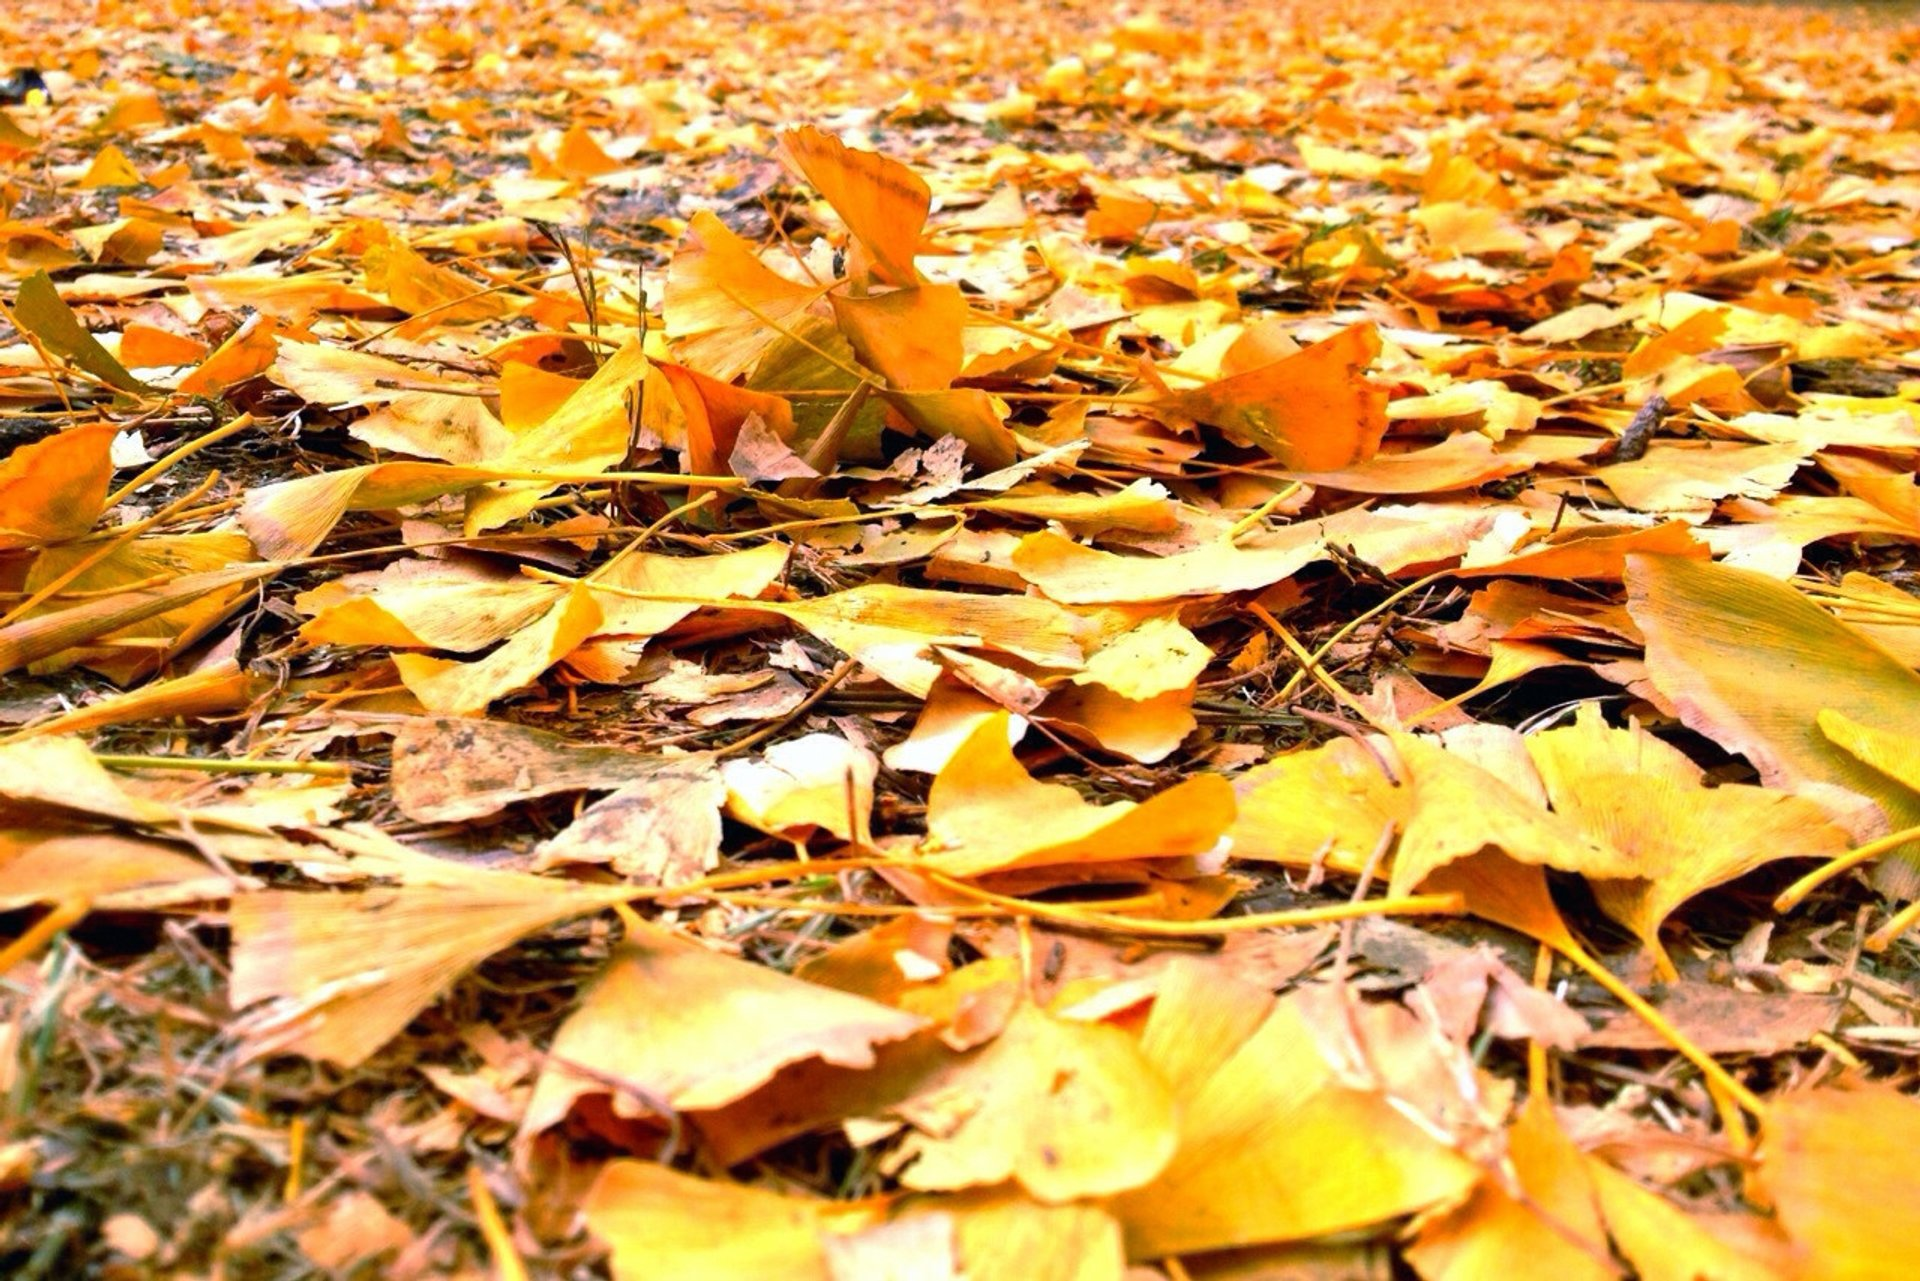 Fallen leaves of Diaoyutai Boulevard 2019